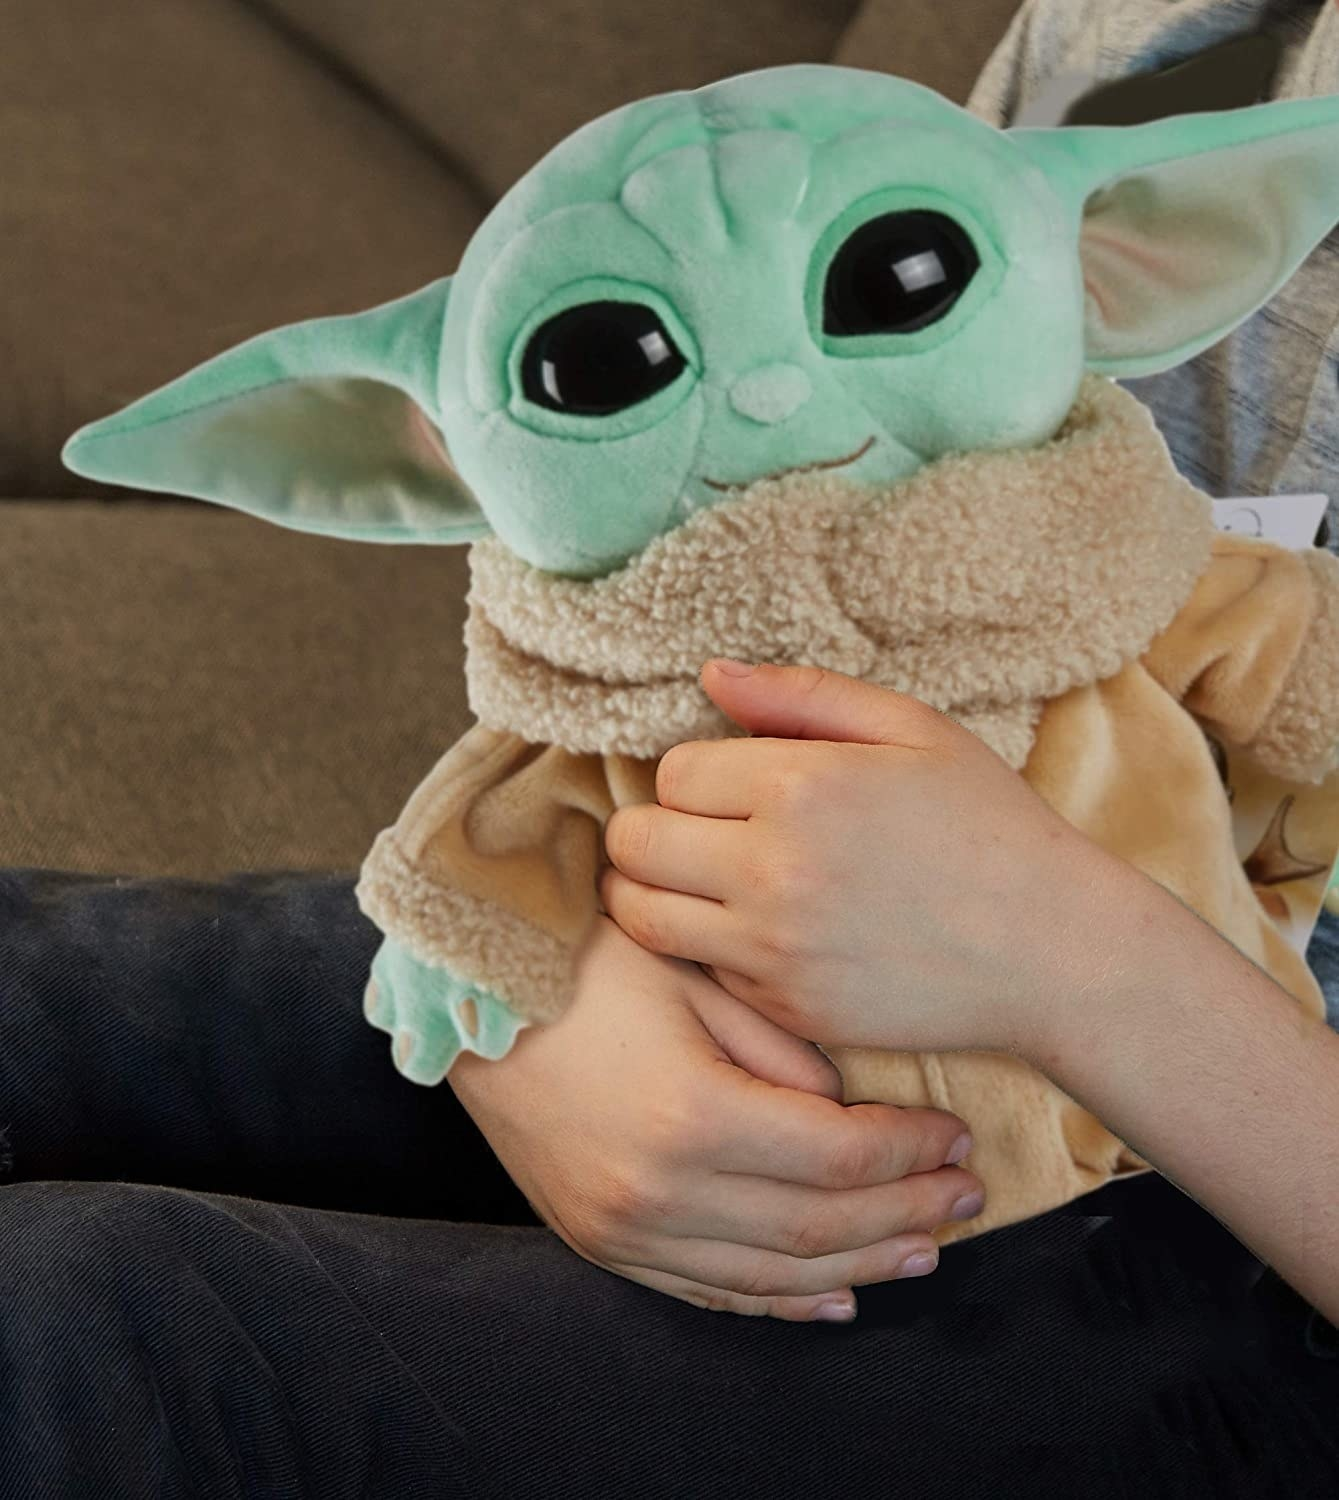 A hand holding A Baby Yoda plushie